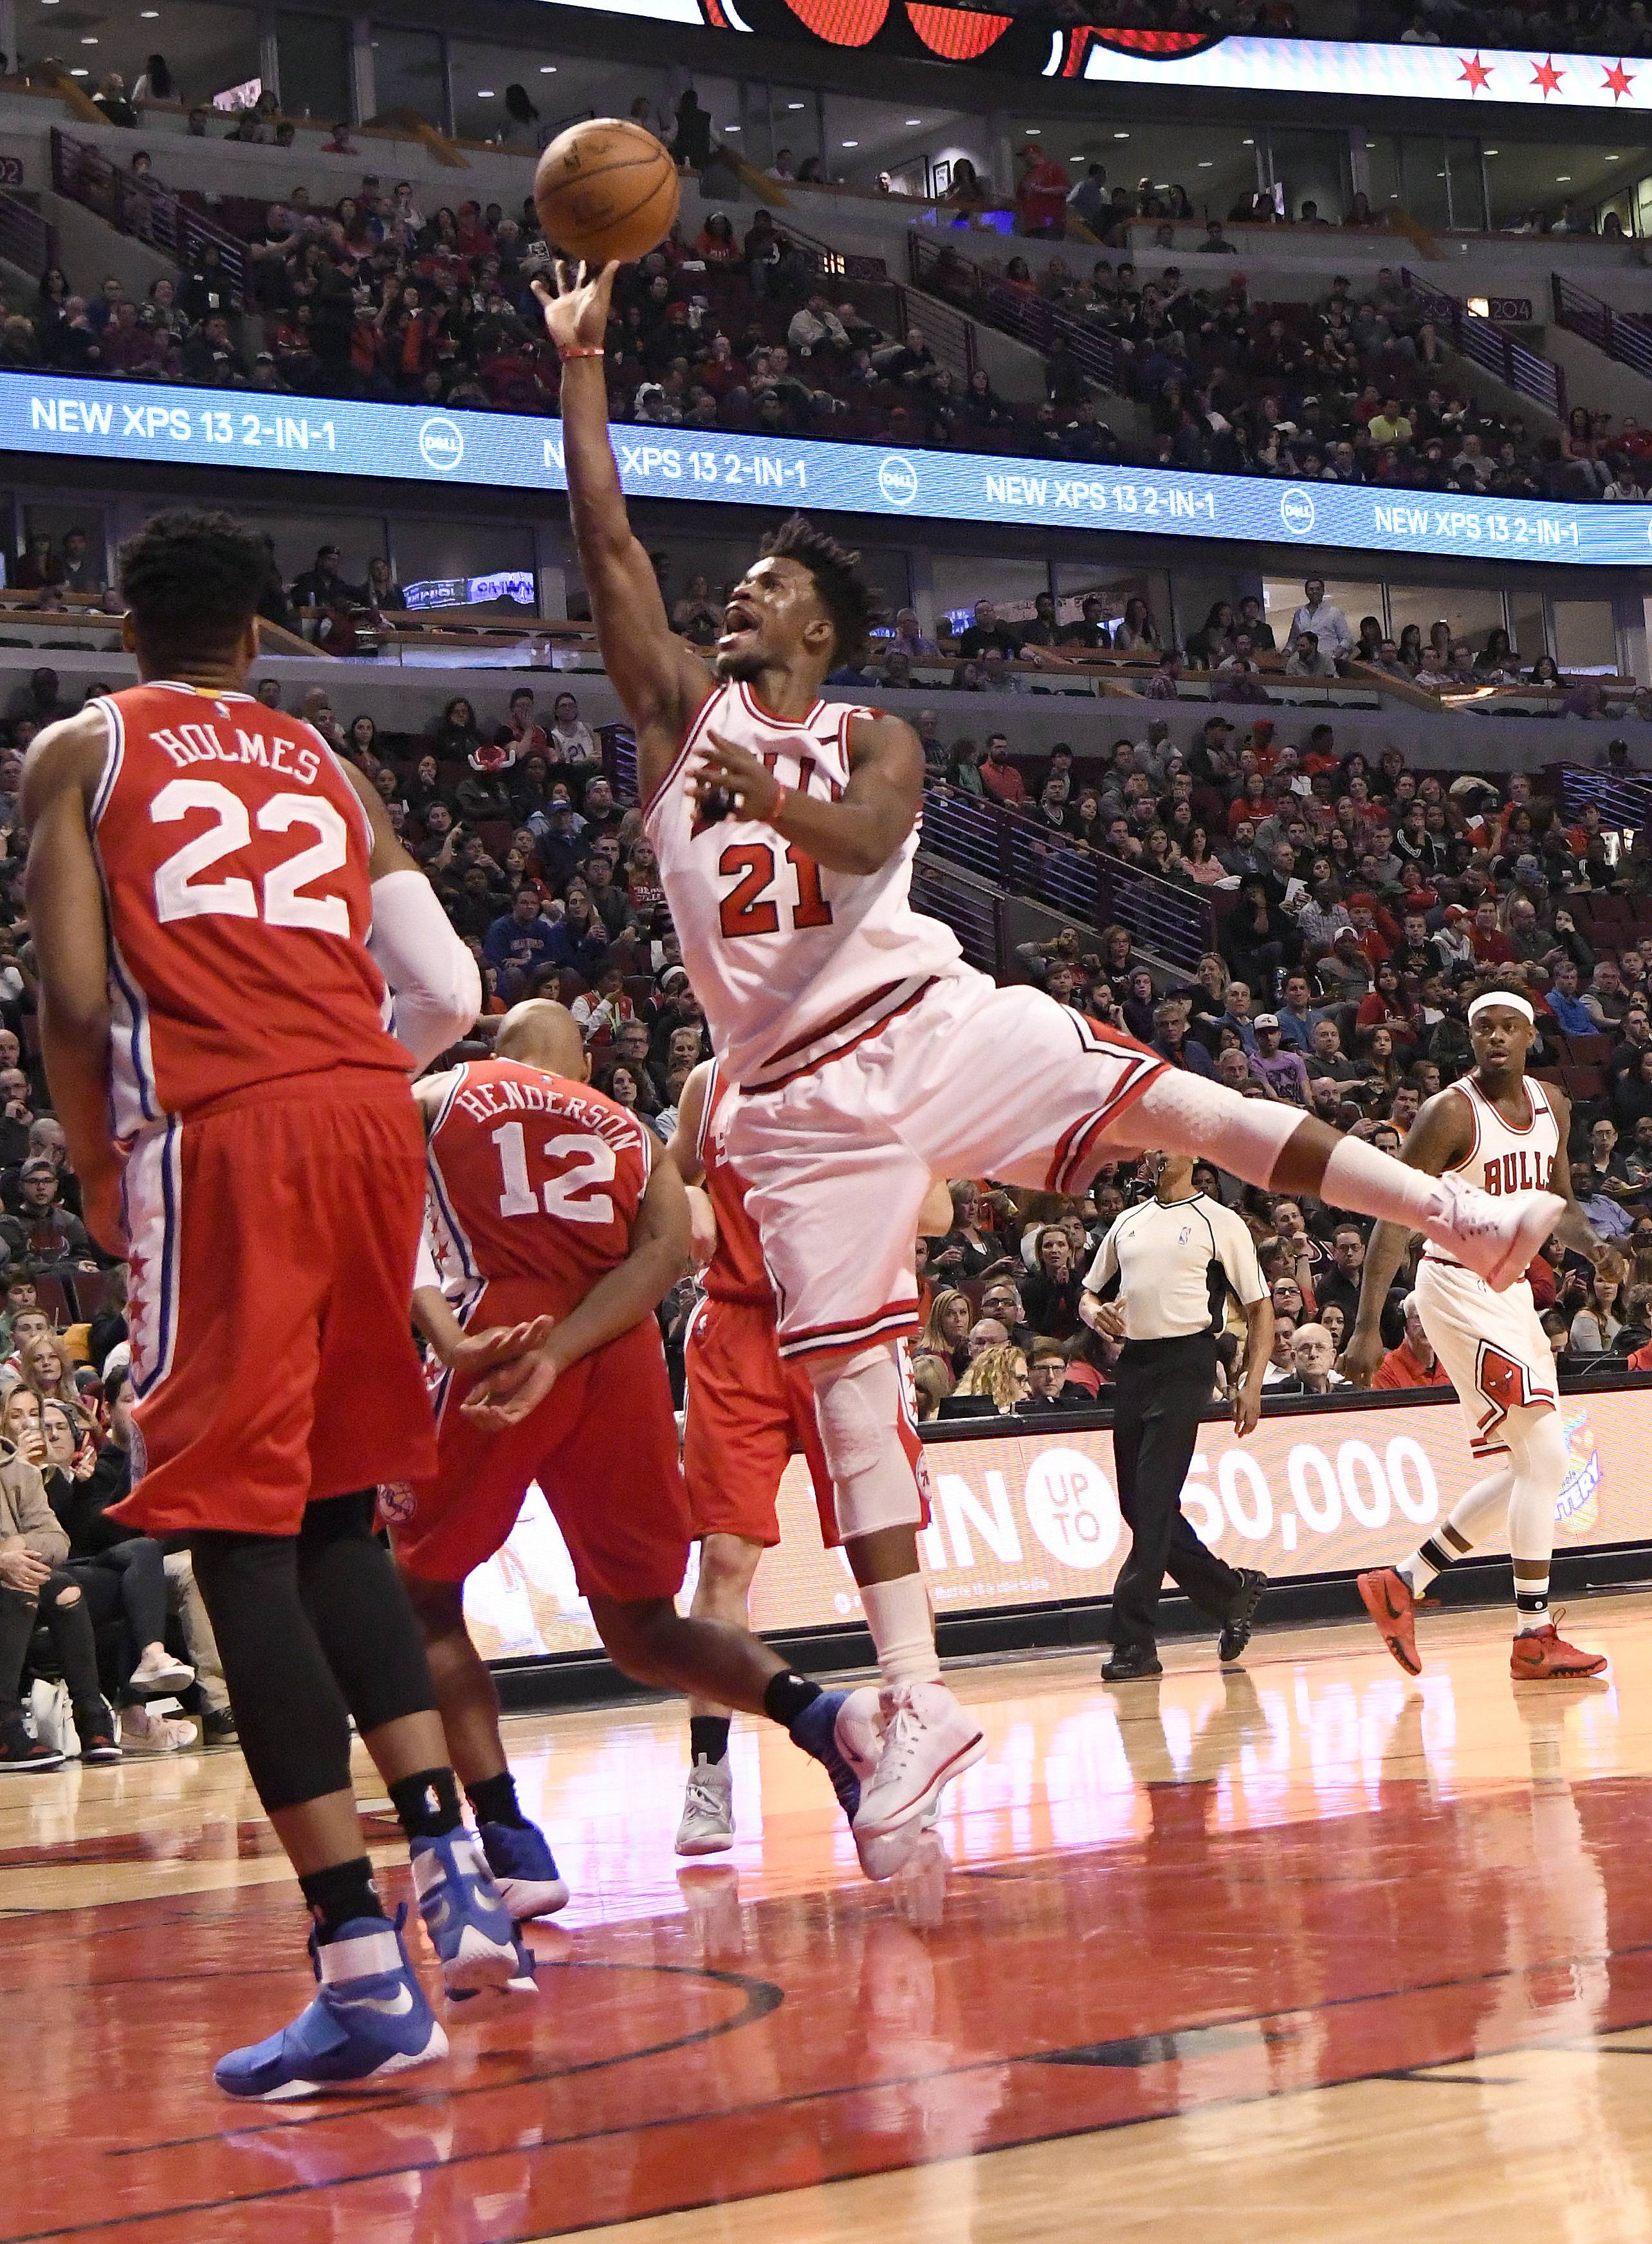 Chicago Bulls forward Jimmy Butler (21) shoots over Philadelphia 76ers guard Gerald Henderson (12) and forward Richaun Holmes (22) during the second half of an NBA basketball game in Chicago, Friday, March 24, 2017. (AP Photo/David Banks)